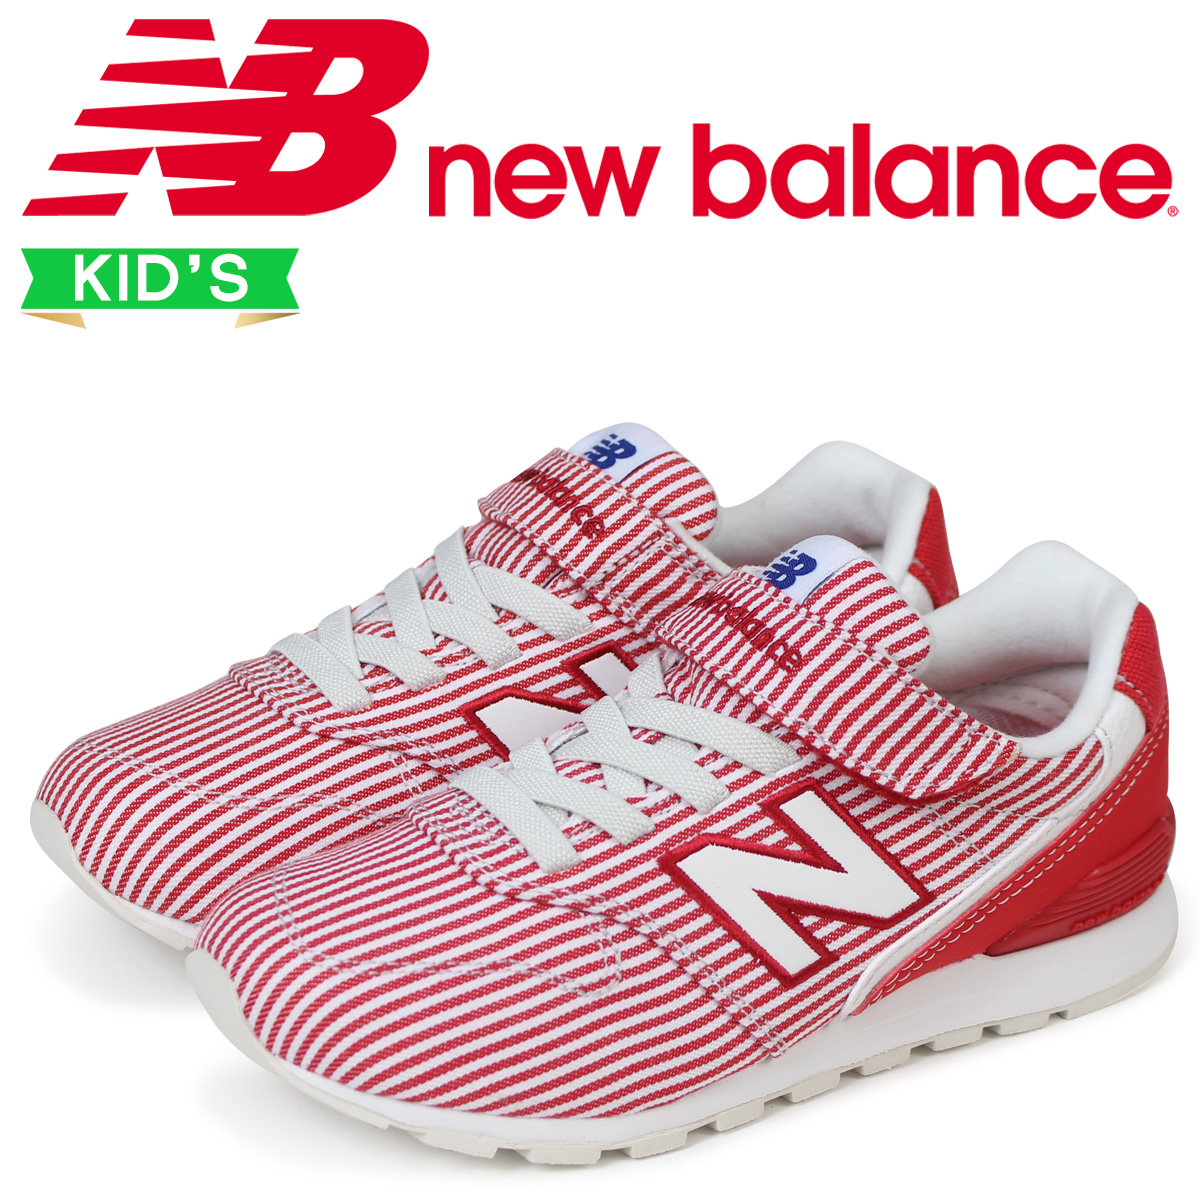 low priced 139d3 a30b5  NEW BALANCE which wears it, and has a good reputation for a feeling, and  is loved for many years by sneakers freak